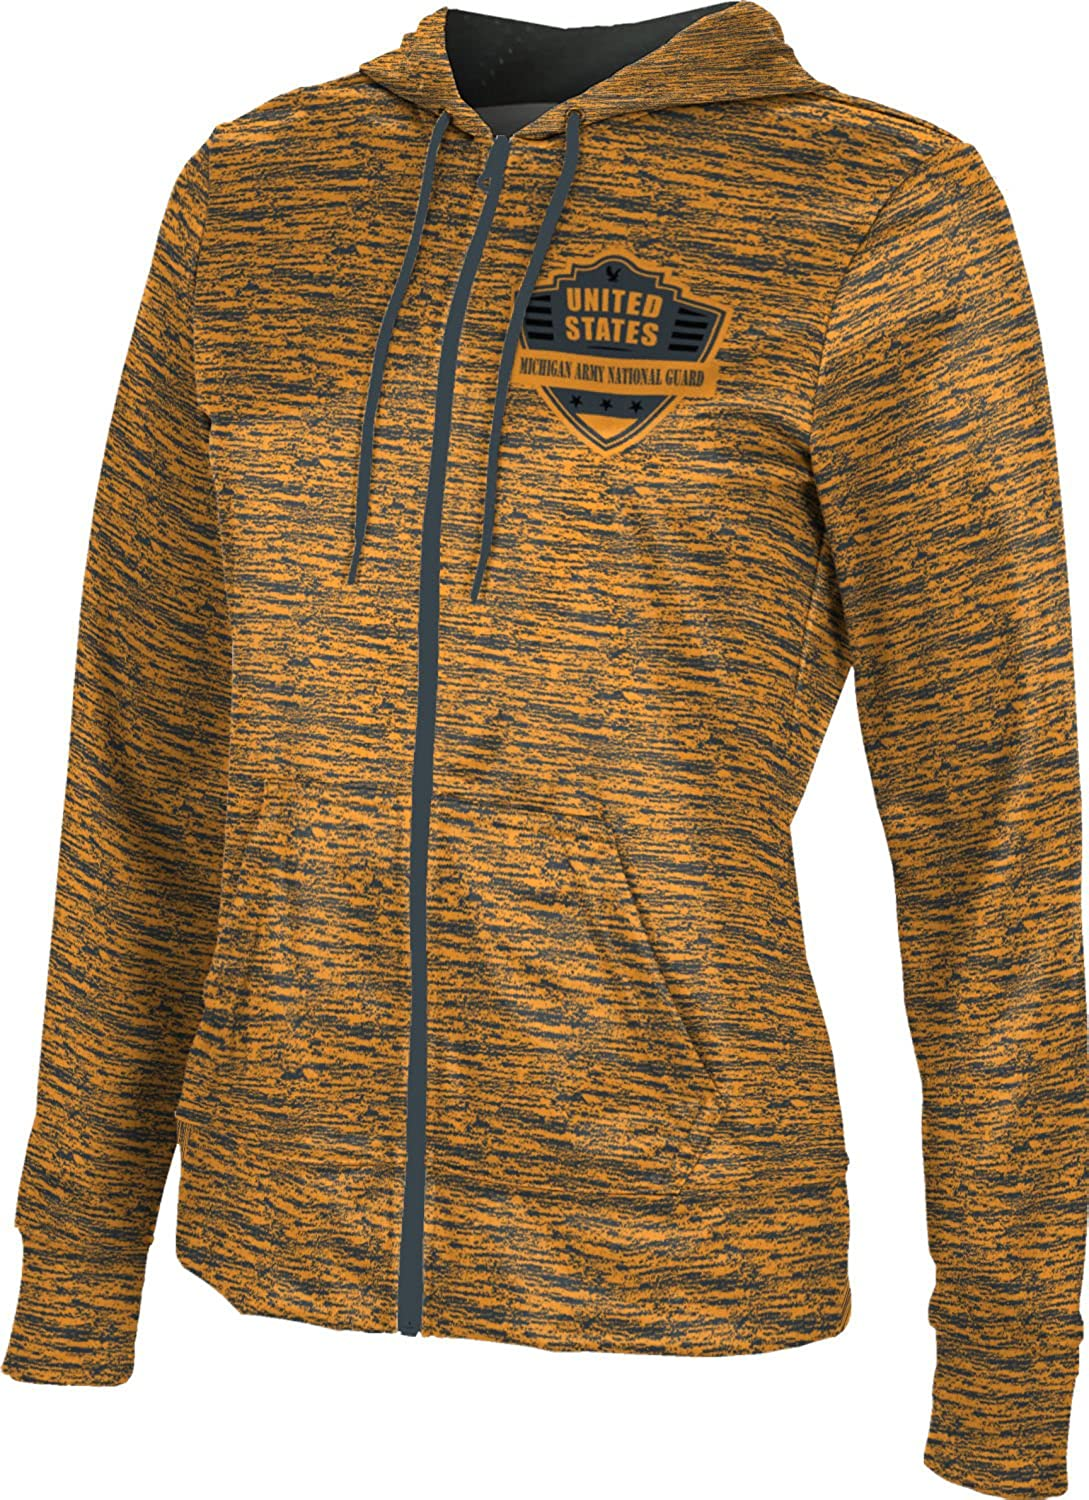 ProSphere Women's Michigan Army National Guard Military Brushed Fullzip Hoodie